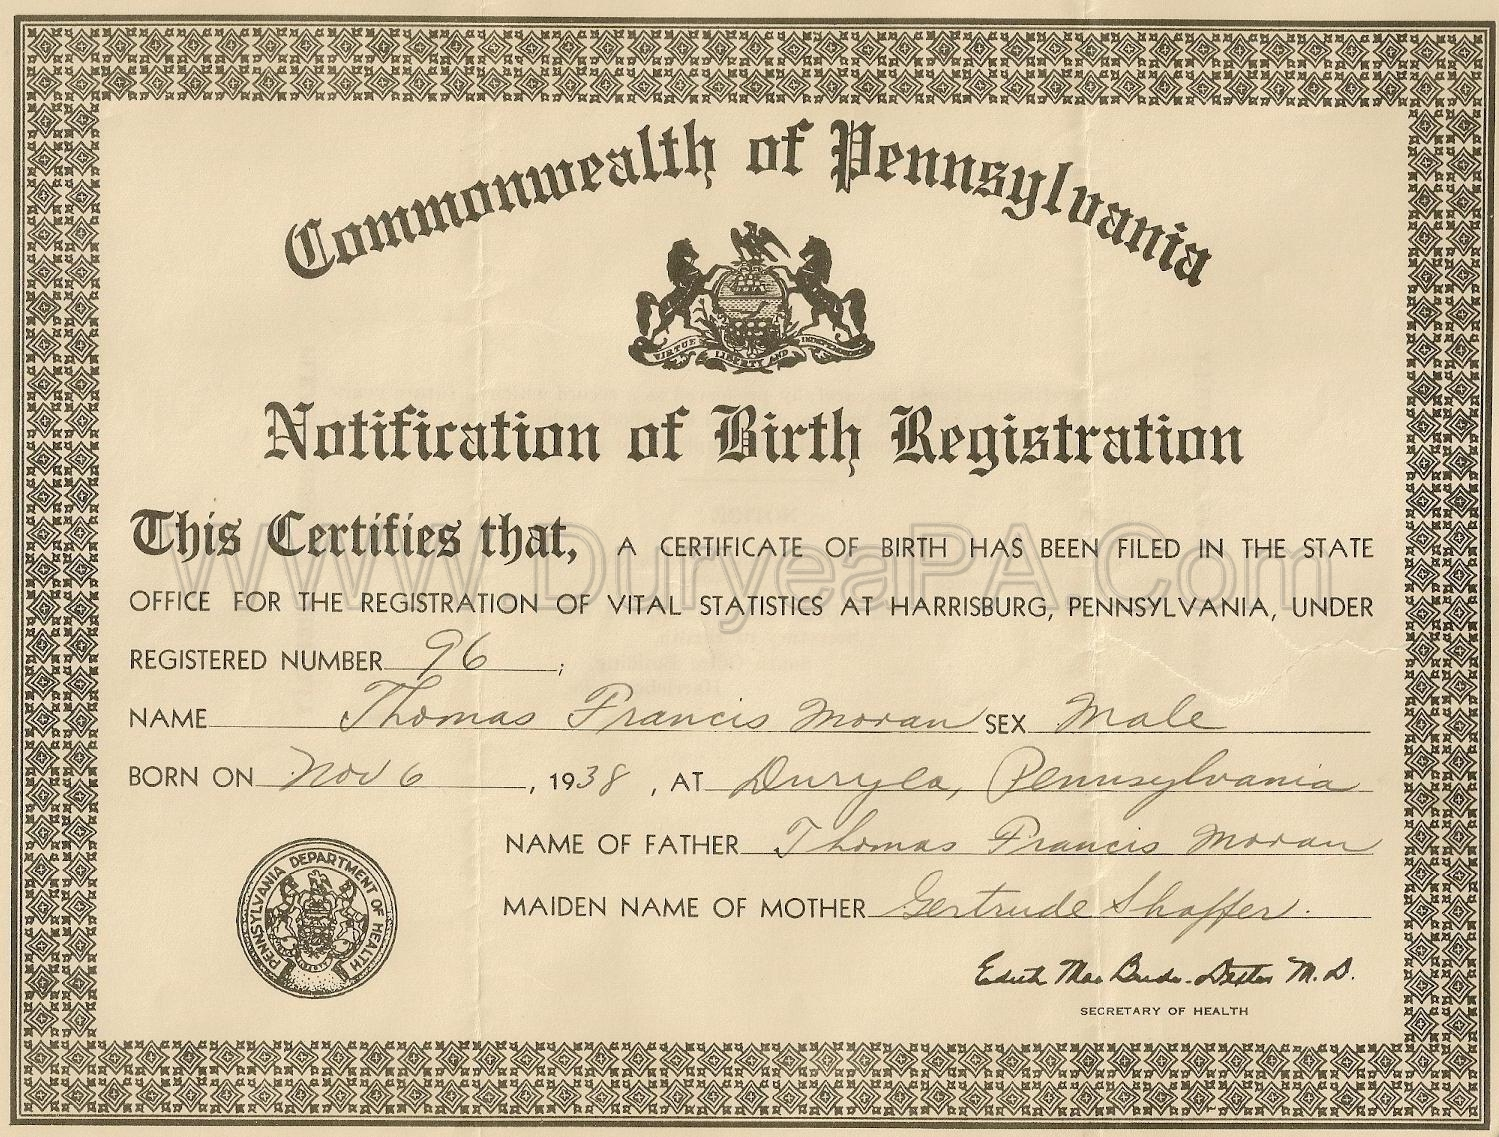 pa birth certificate application Applying for passport: Is birth certificate new enough? - Page 2